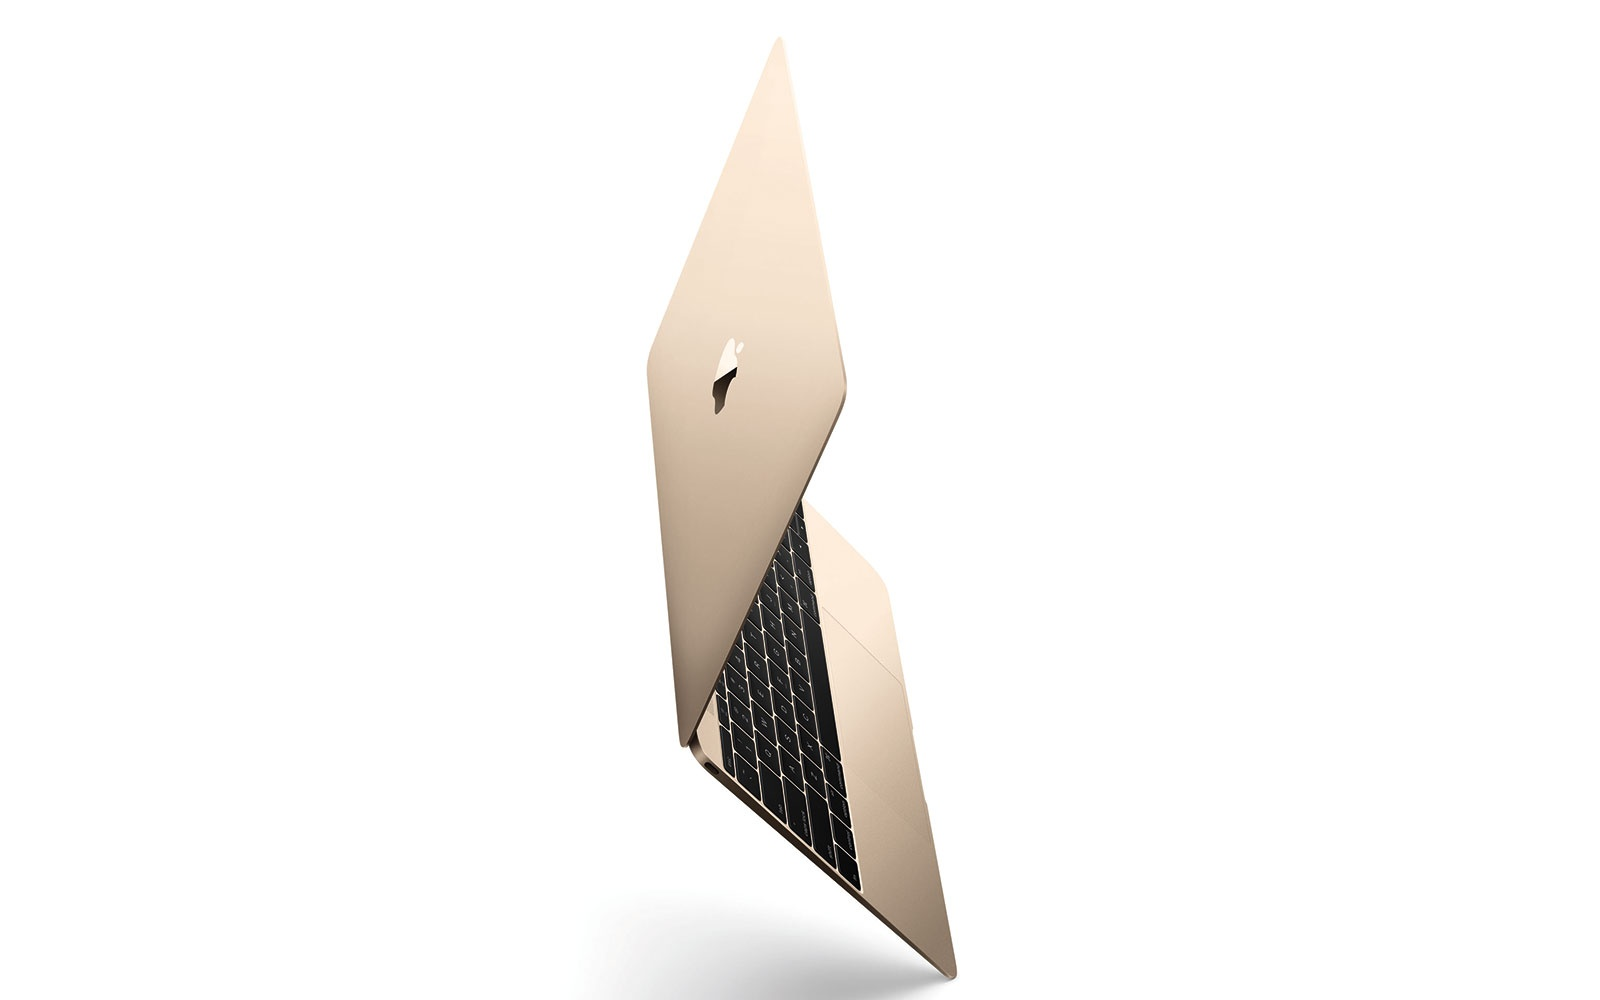 New Macbook